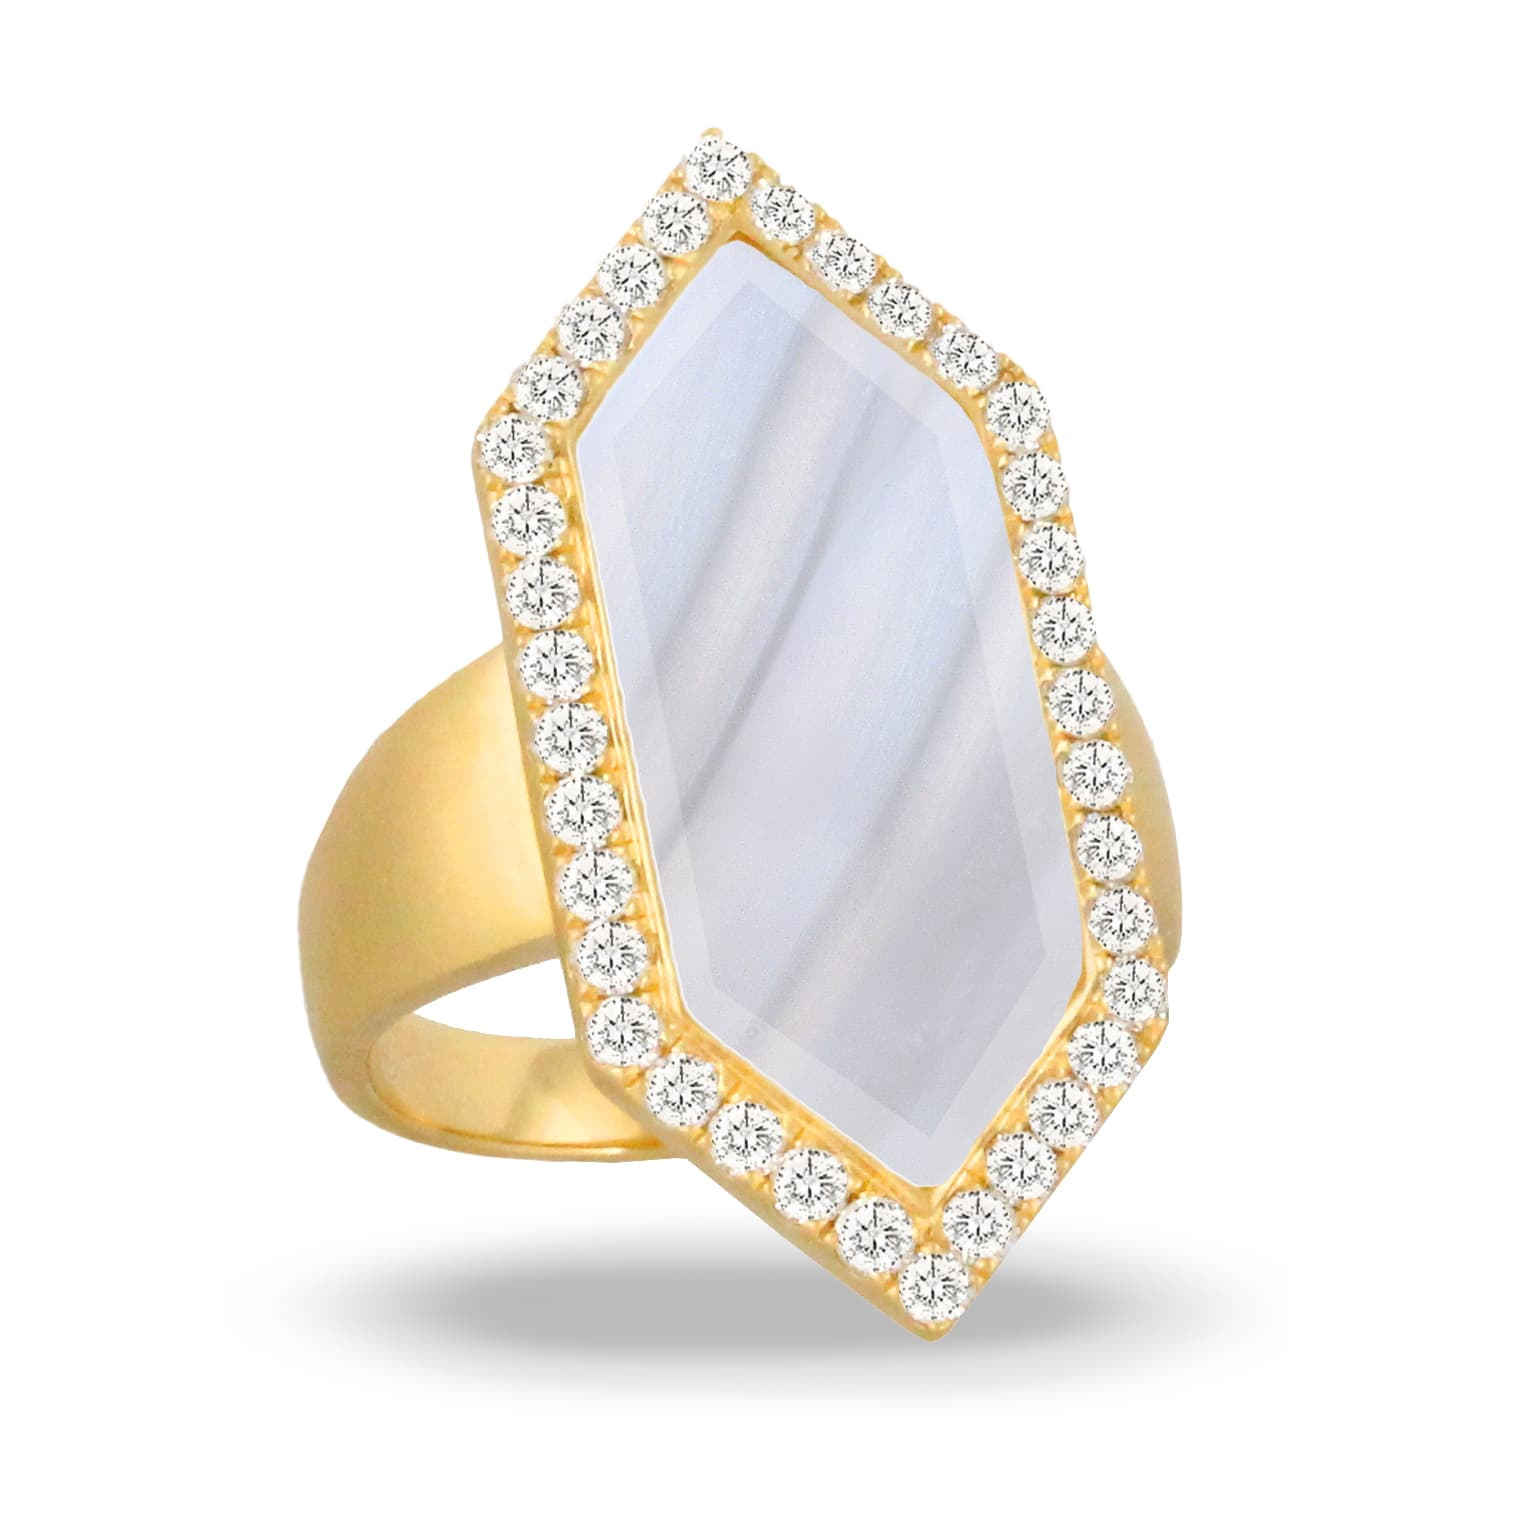 18K YELLOW GOLD DIAMOND RING WITH GREY AGATE IN SATIN FINISH